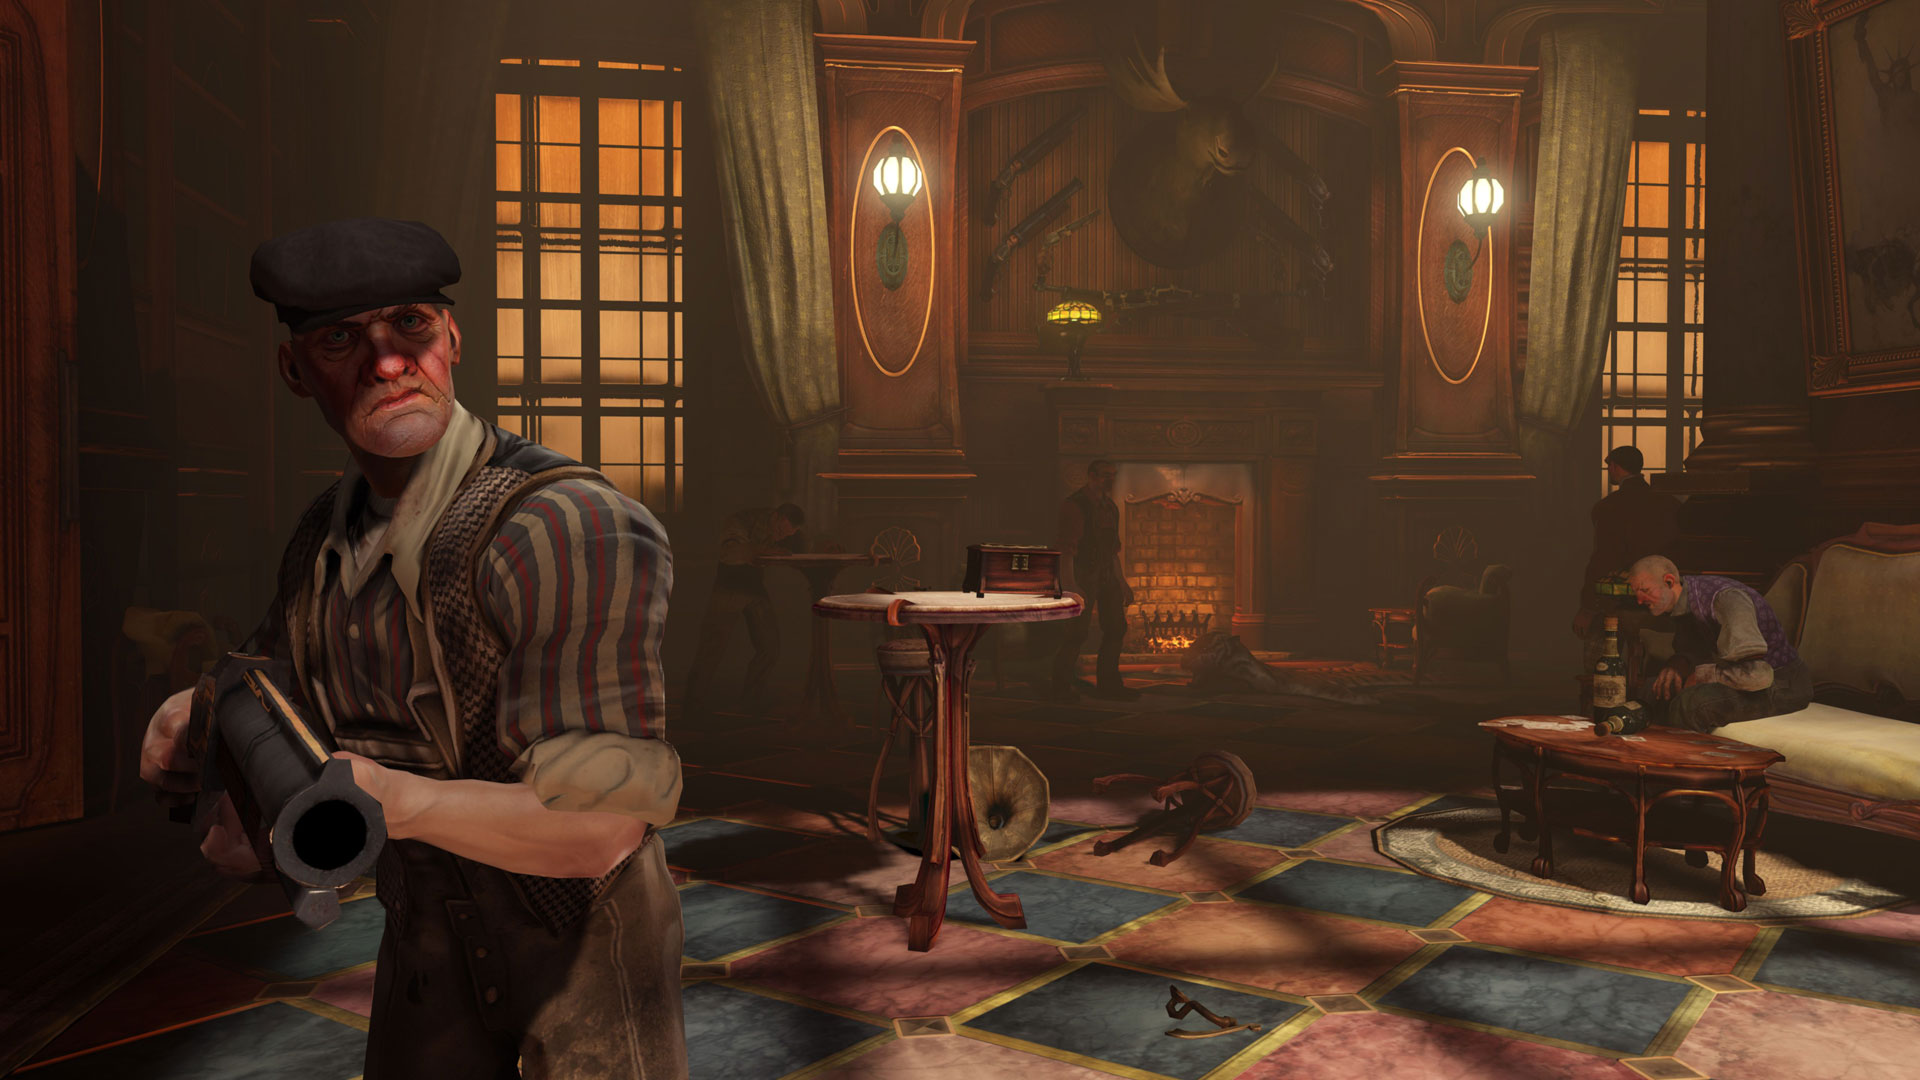 http://images.wikia.com/bioshock/images/8/8c/Barman_with_shotgun.jpg